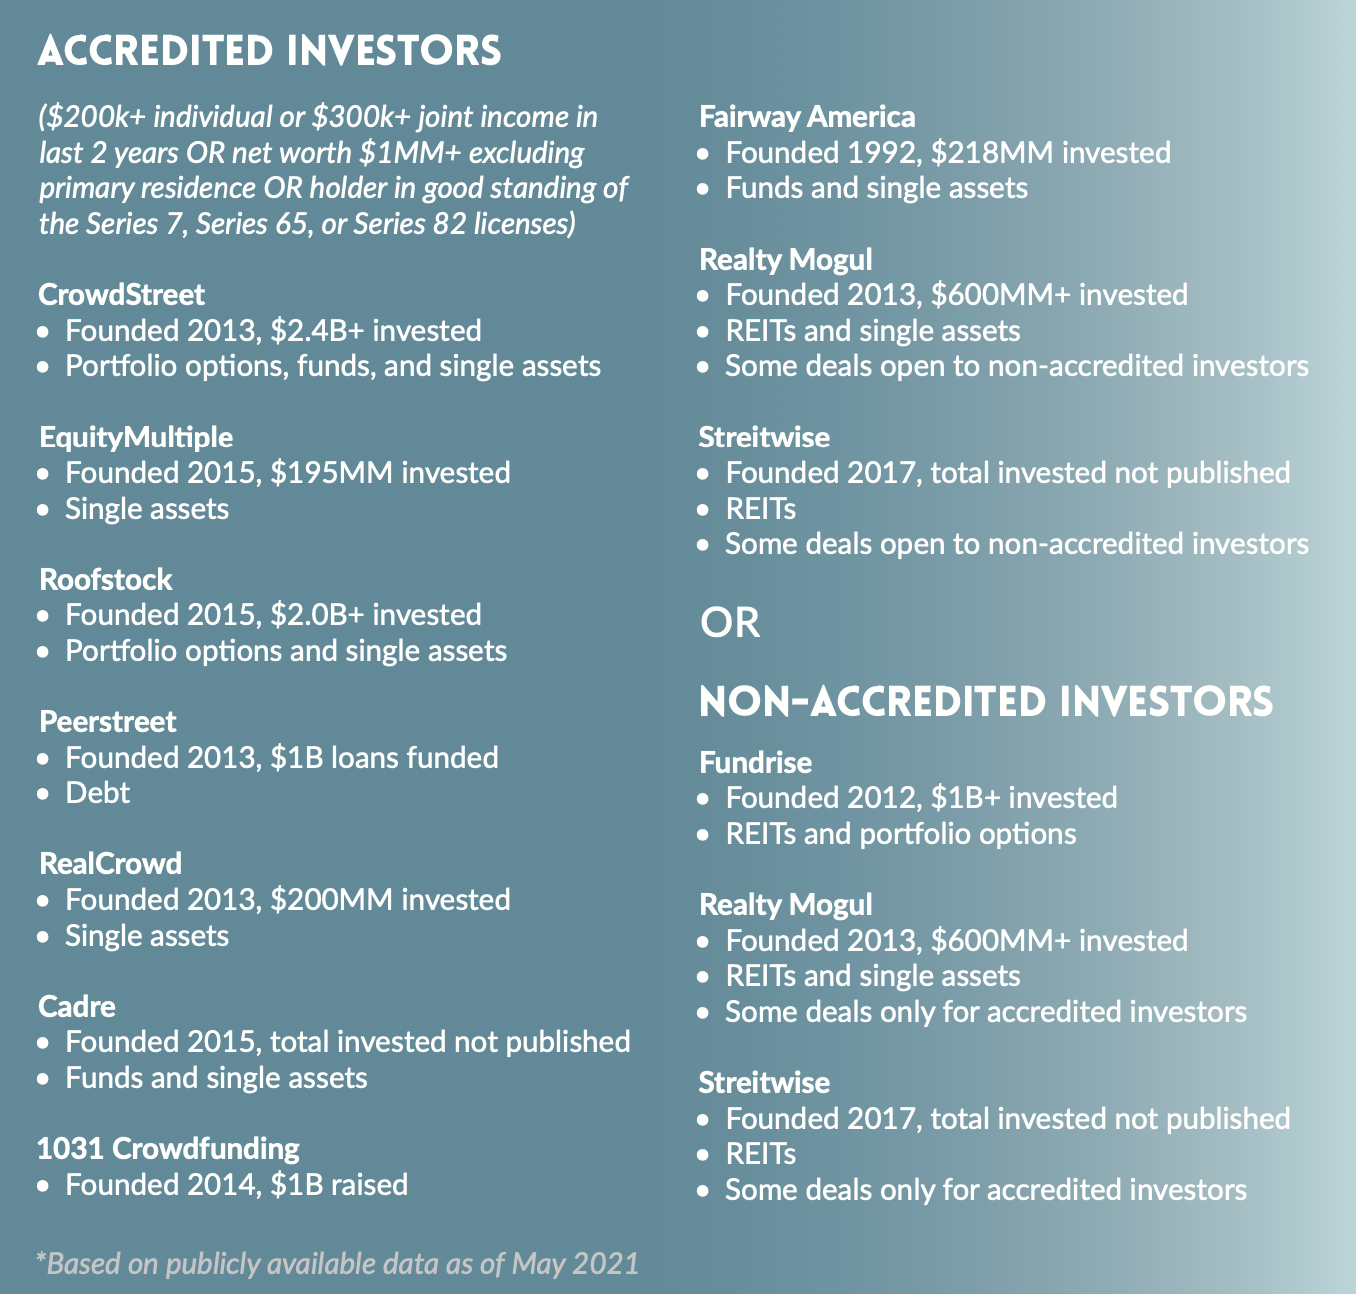 Online real estate investing platforms for accredited and non-accredited investors